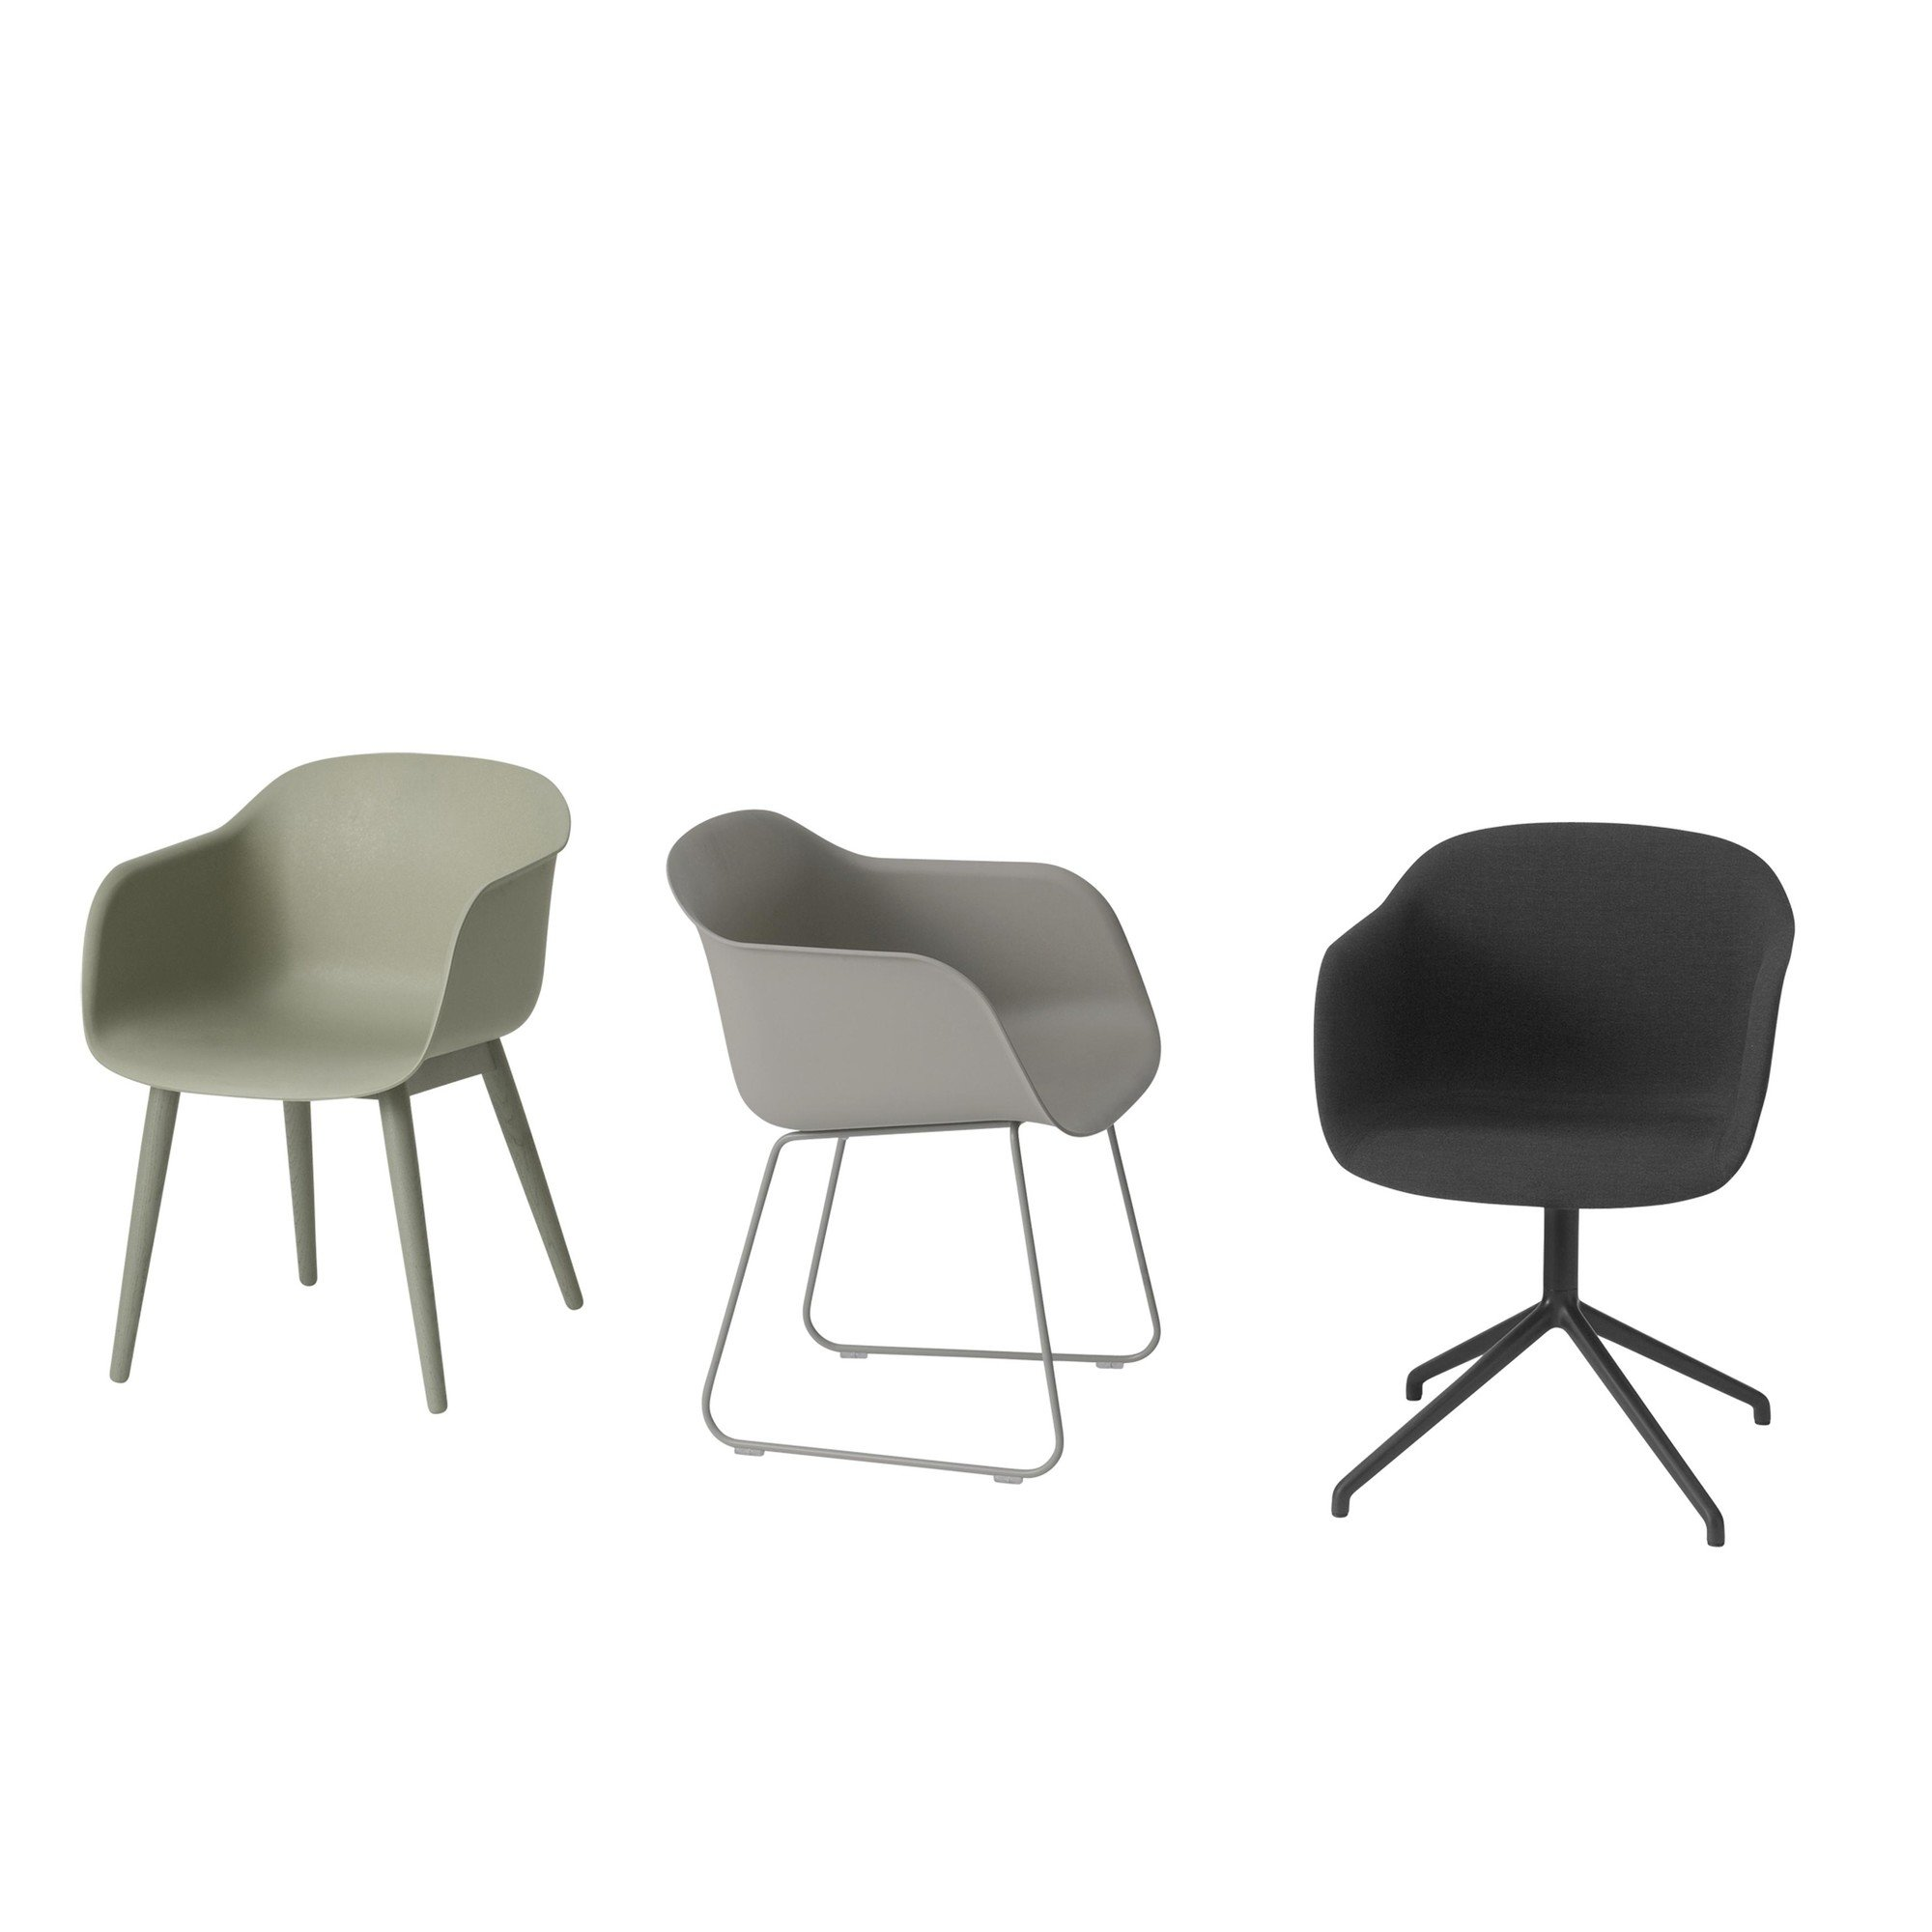 muuto fiber chair armchair with sled base ambientedirect. Black Bedroom Furniture Sets. Home Design Ideas